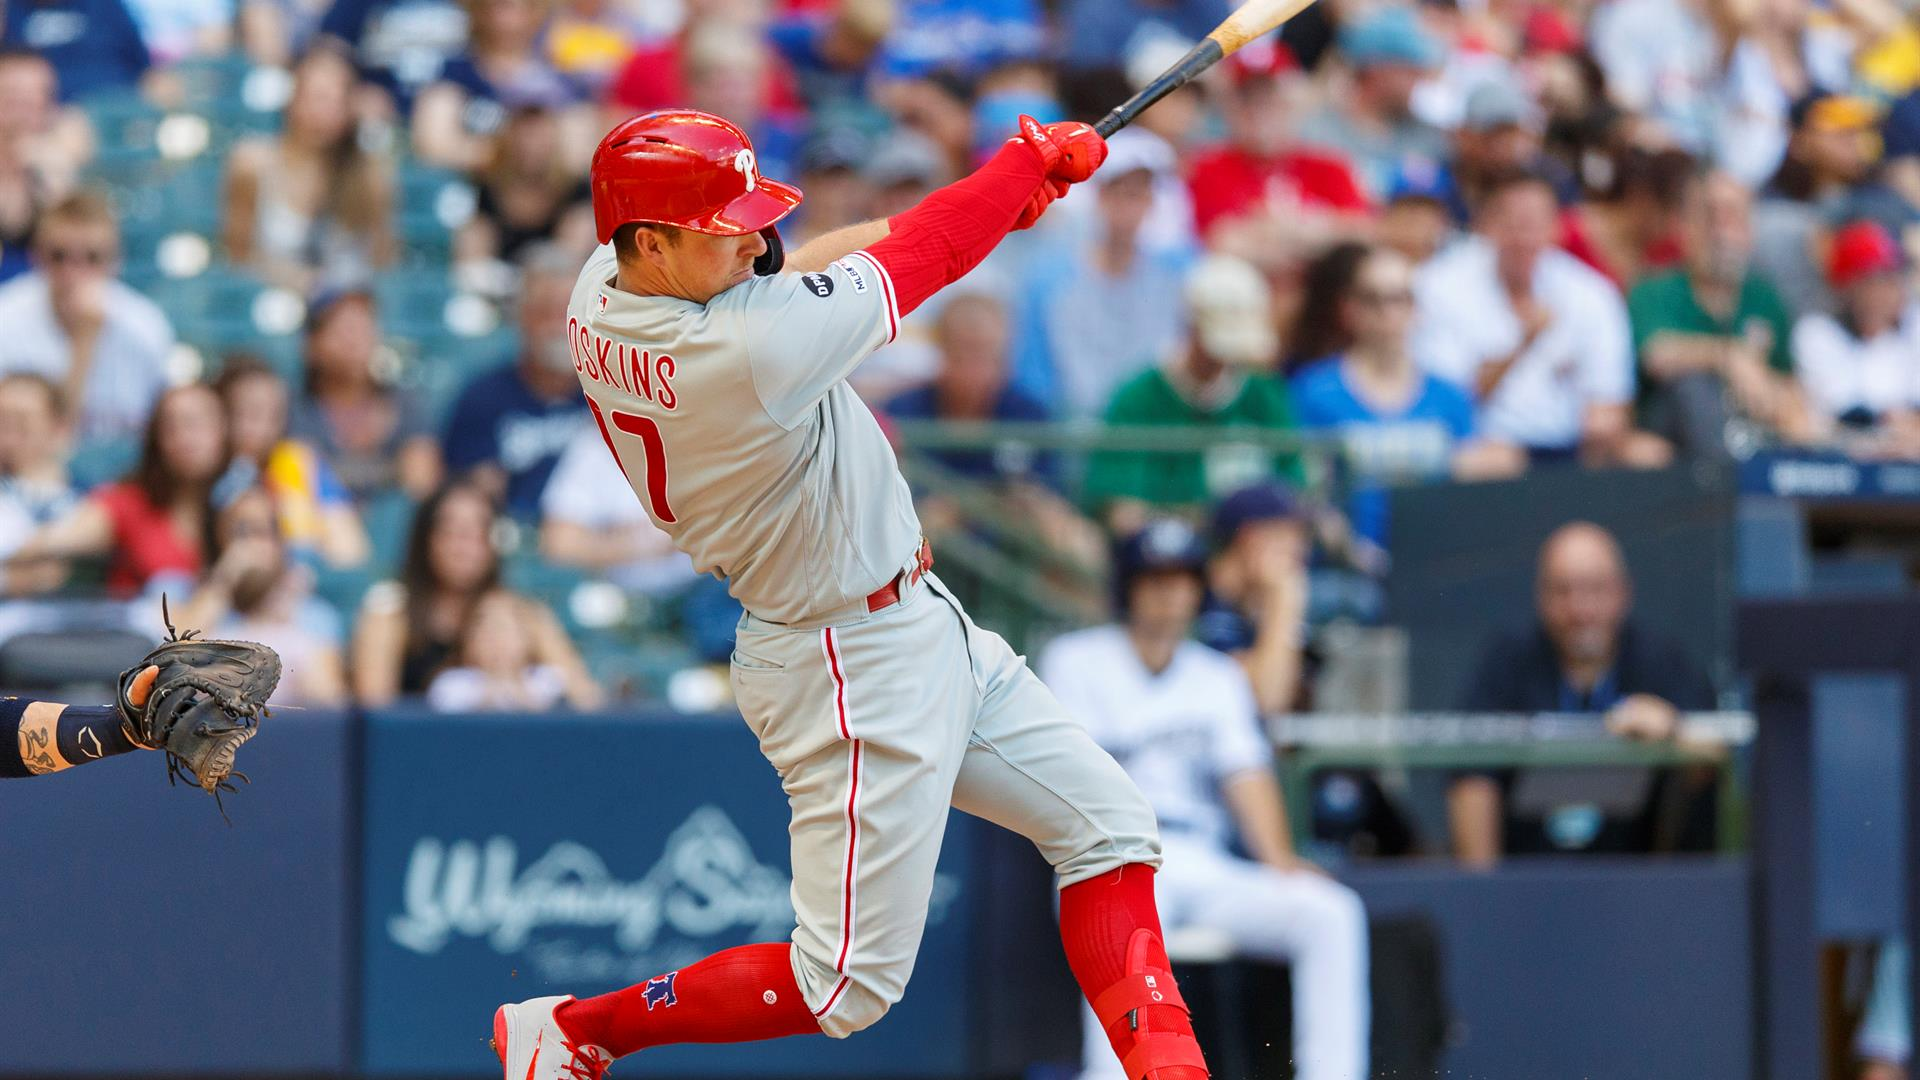 Four home runs lift the Phillies over the Brewers in Milwaukee